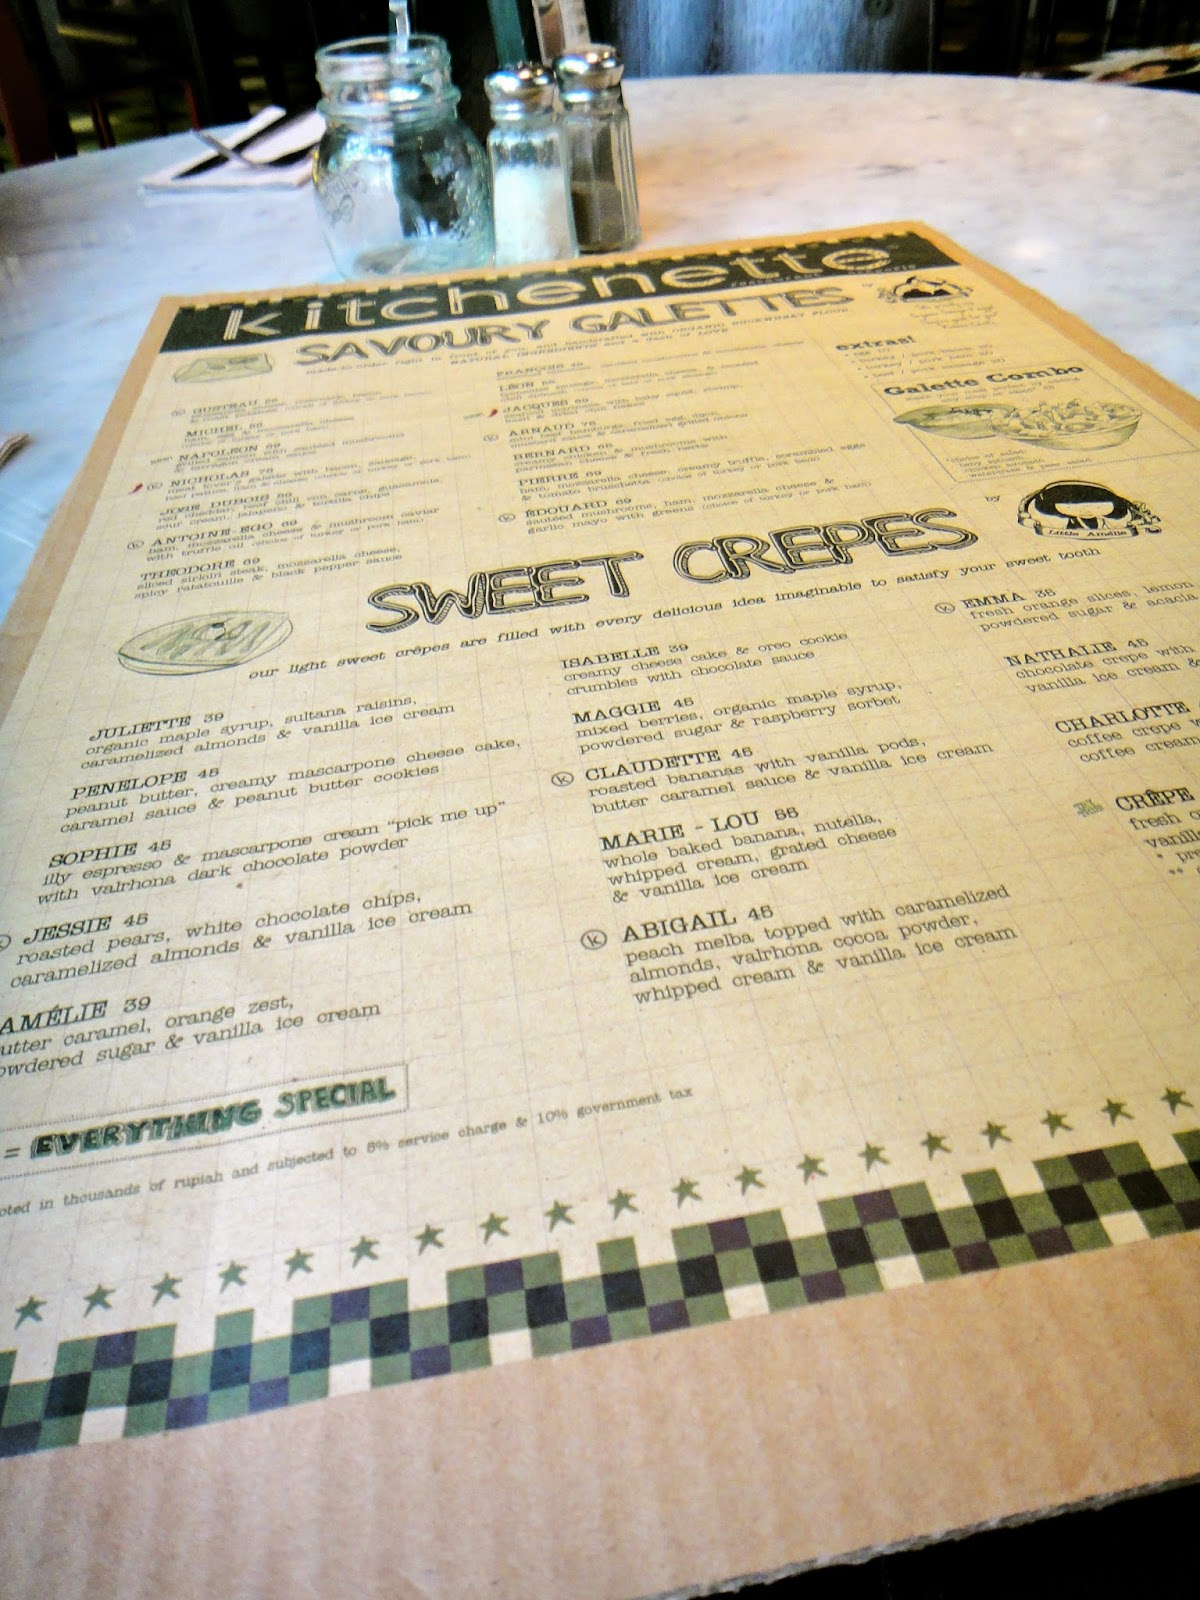 date with my brother at kitchenette central park wandering fel